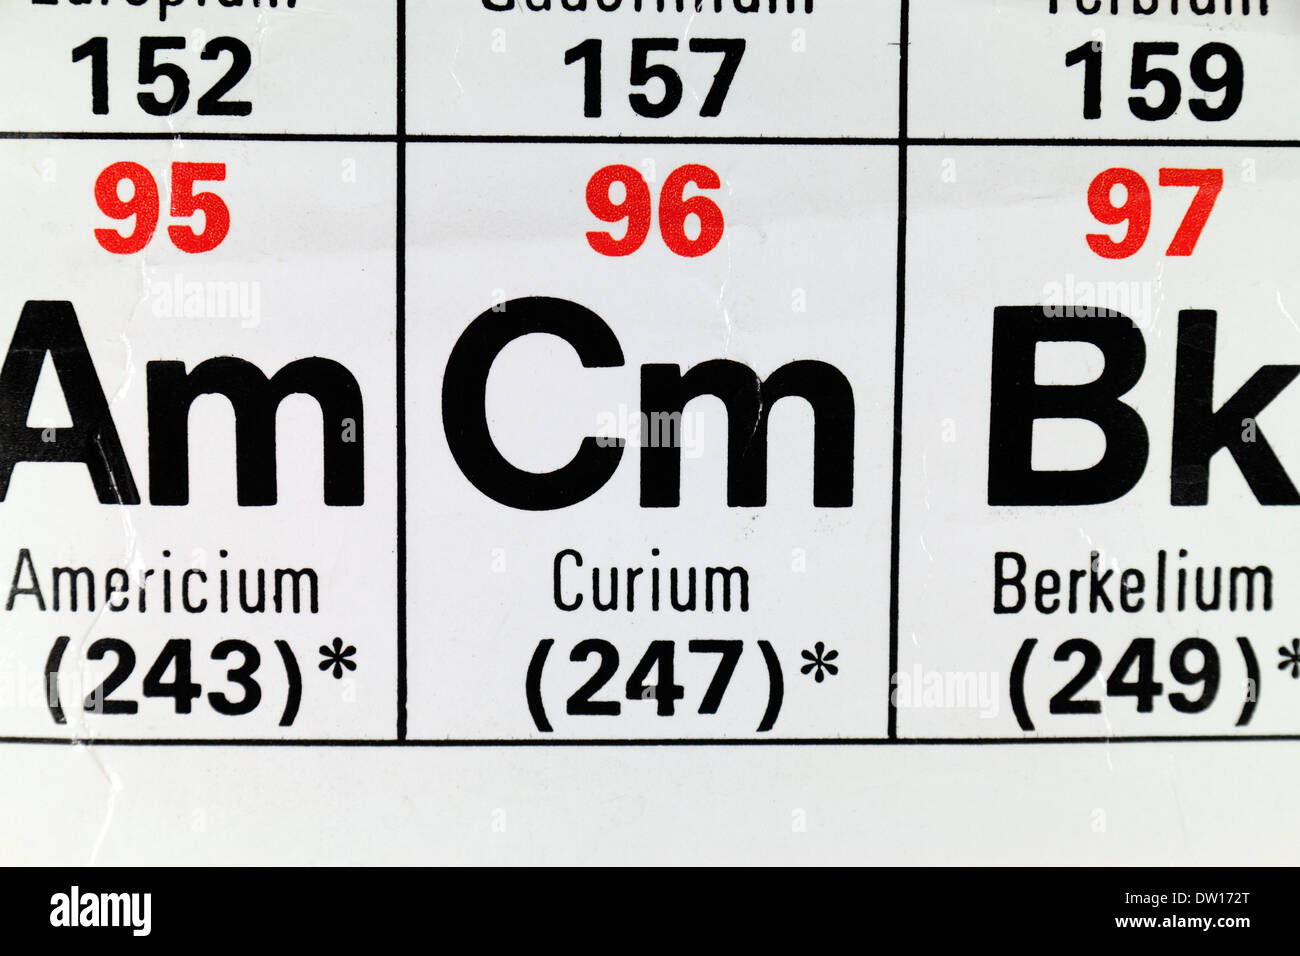 Curium (Cm) as it appears on the Periodic Table. - Stock Image